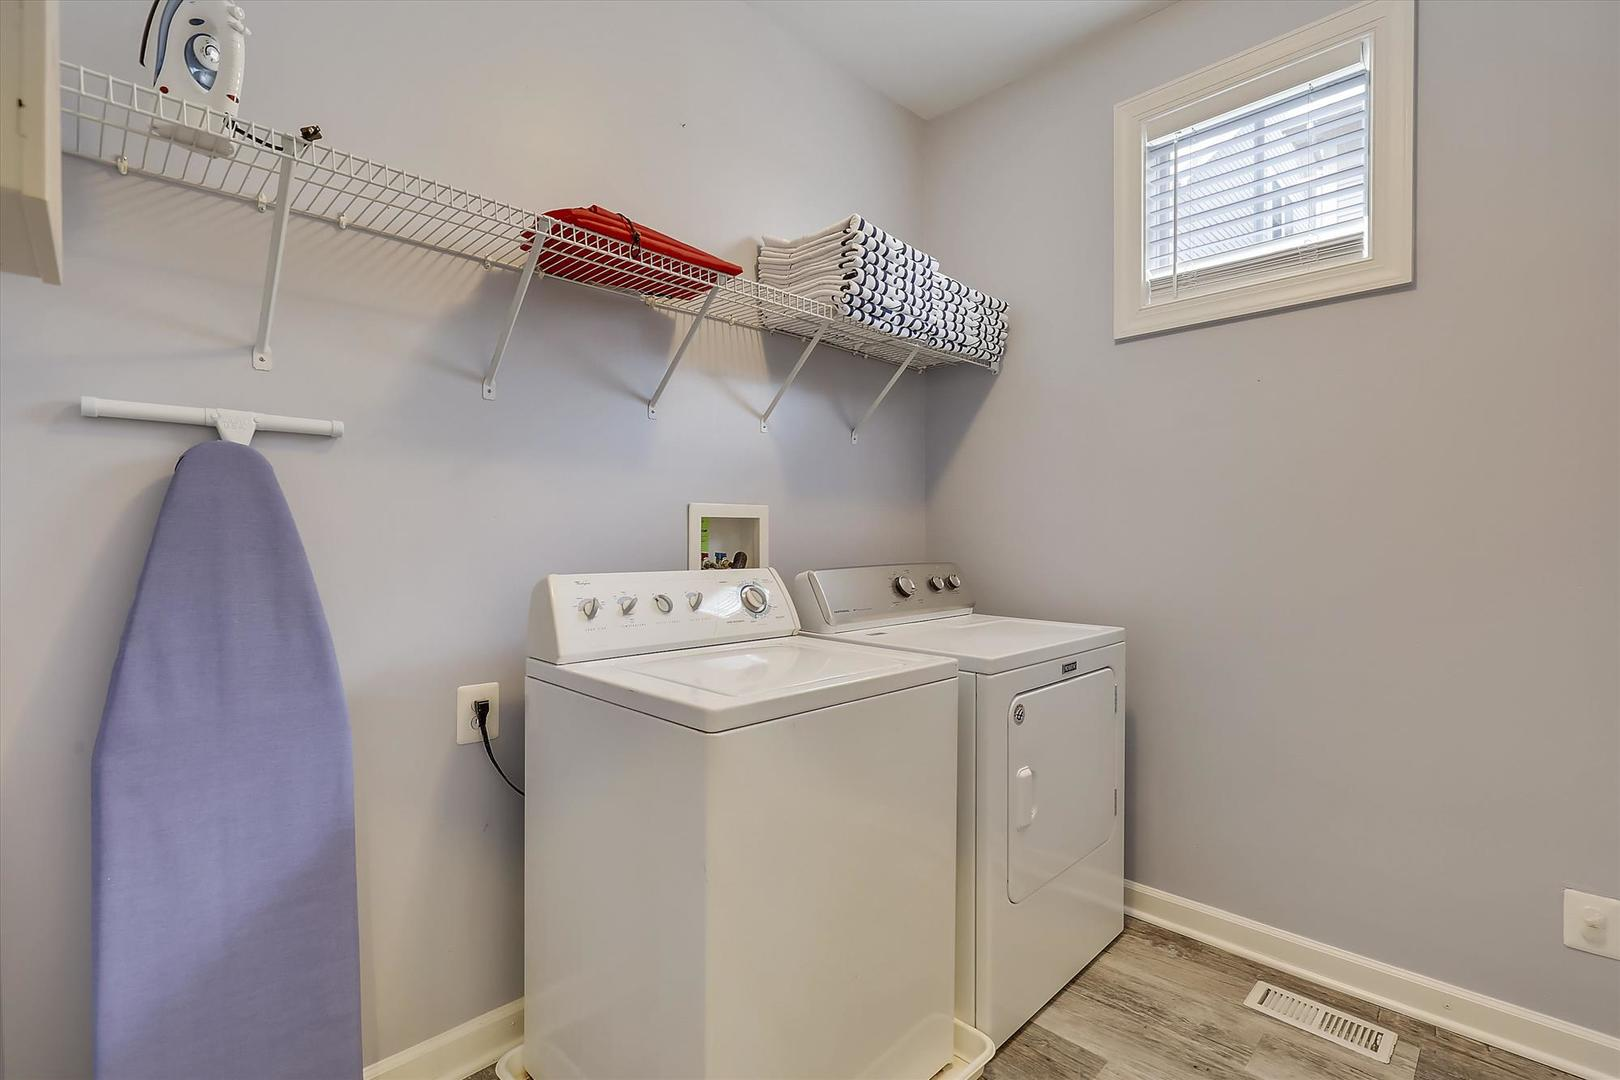 28 Seaside Dr. - Laundry Area